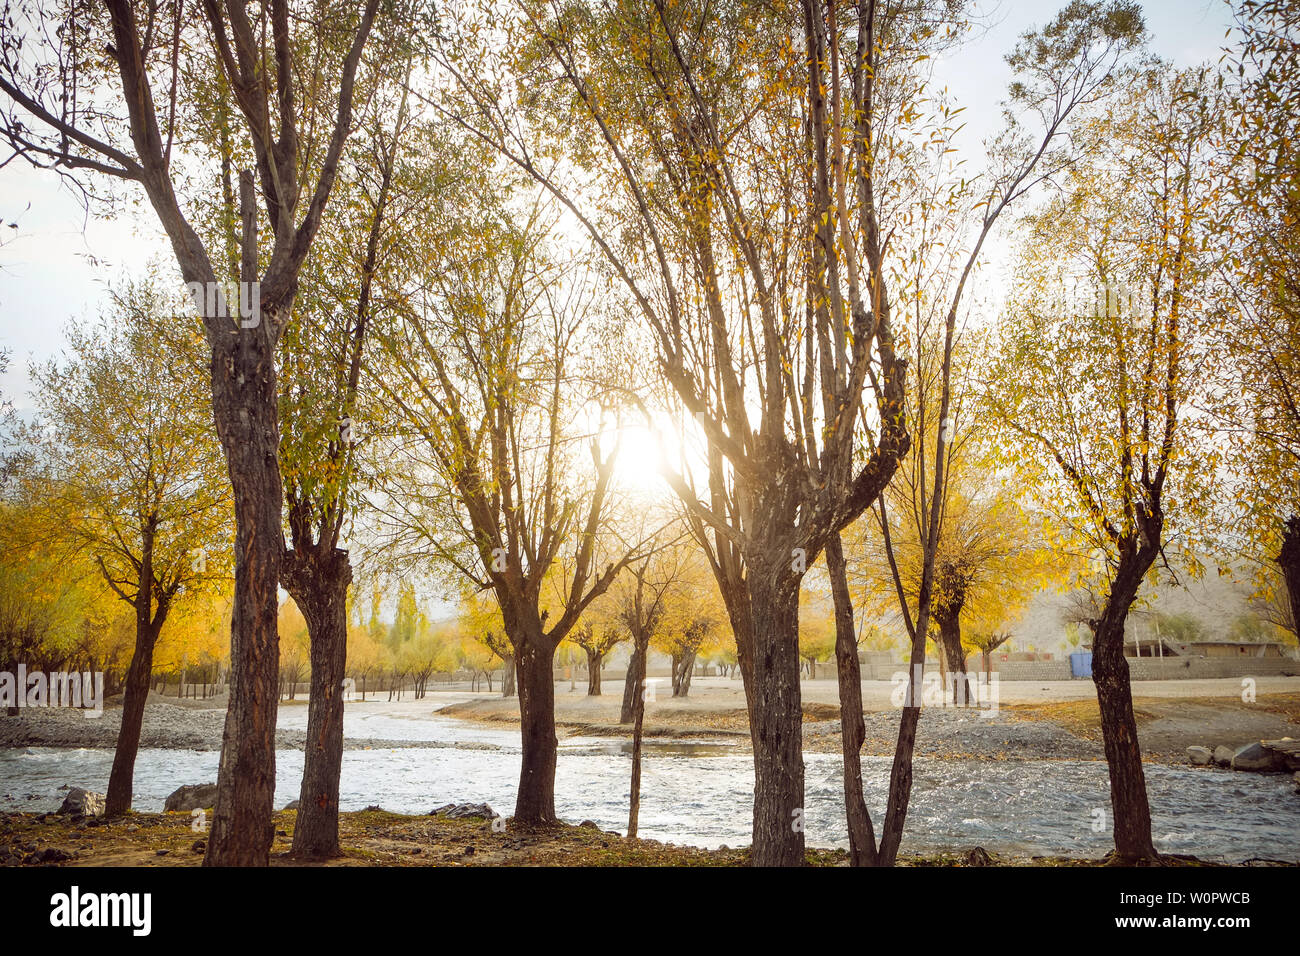 Sunrise lit colorful forest in autumn season. River flowing through yellow leaves trees. Sunshine in Skardu. Gilgit Baltistan, Pakistan. - Stock Image